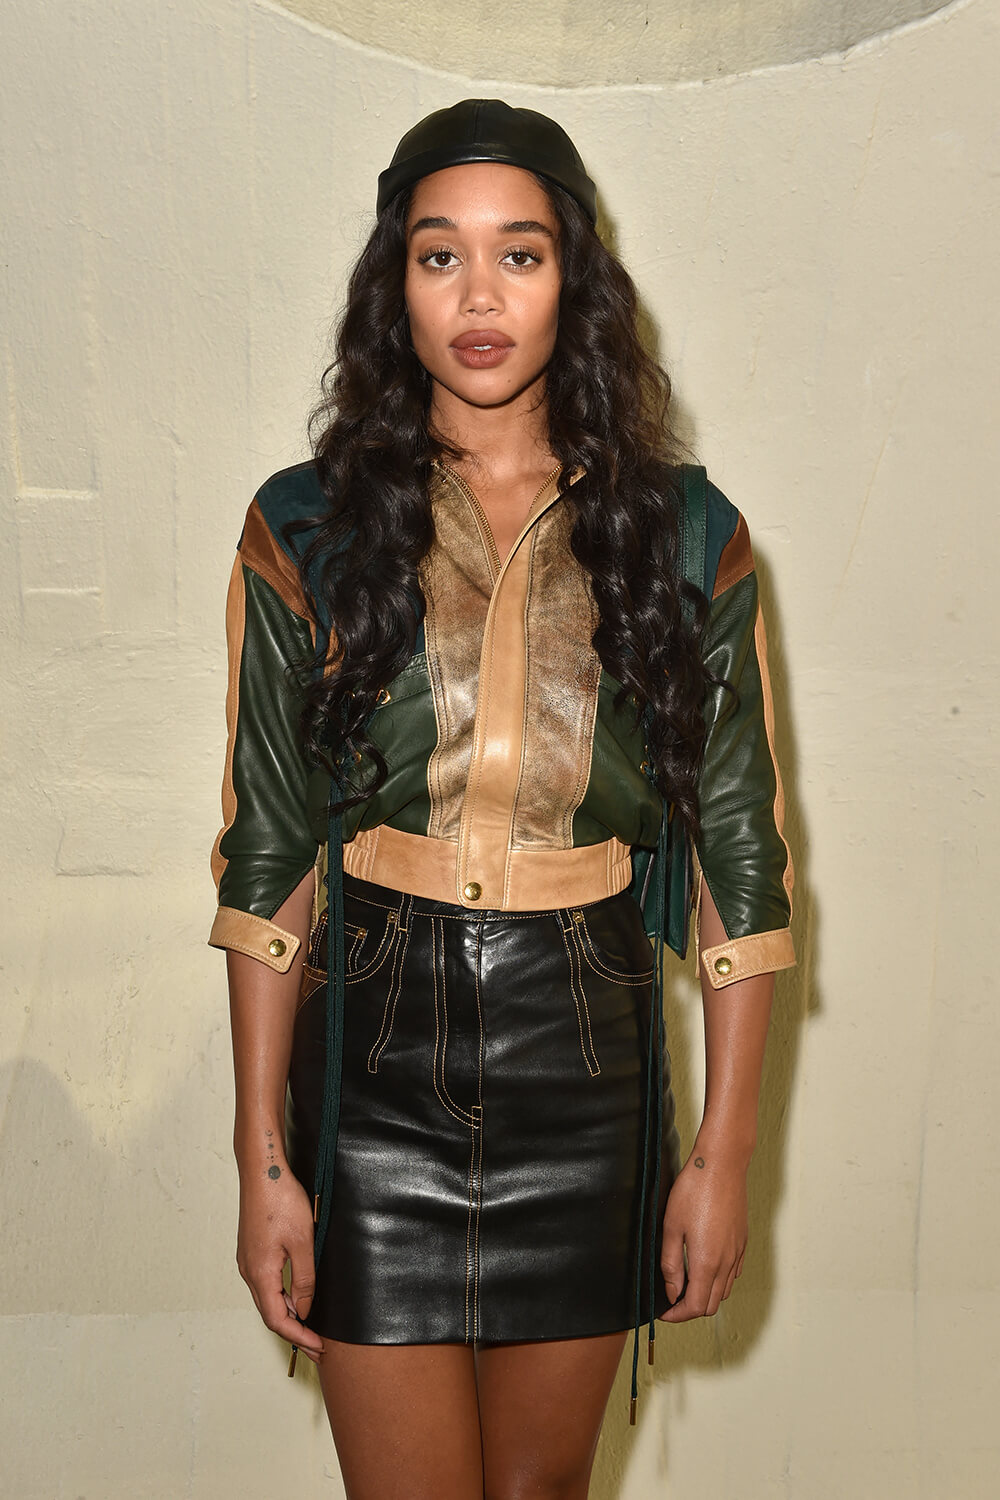 Laura Harrier attends Louis Vuitton Cruise 2020 Fashion Show